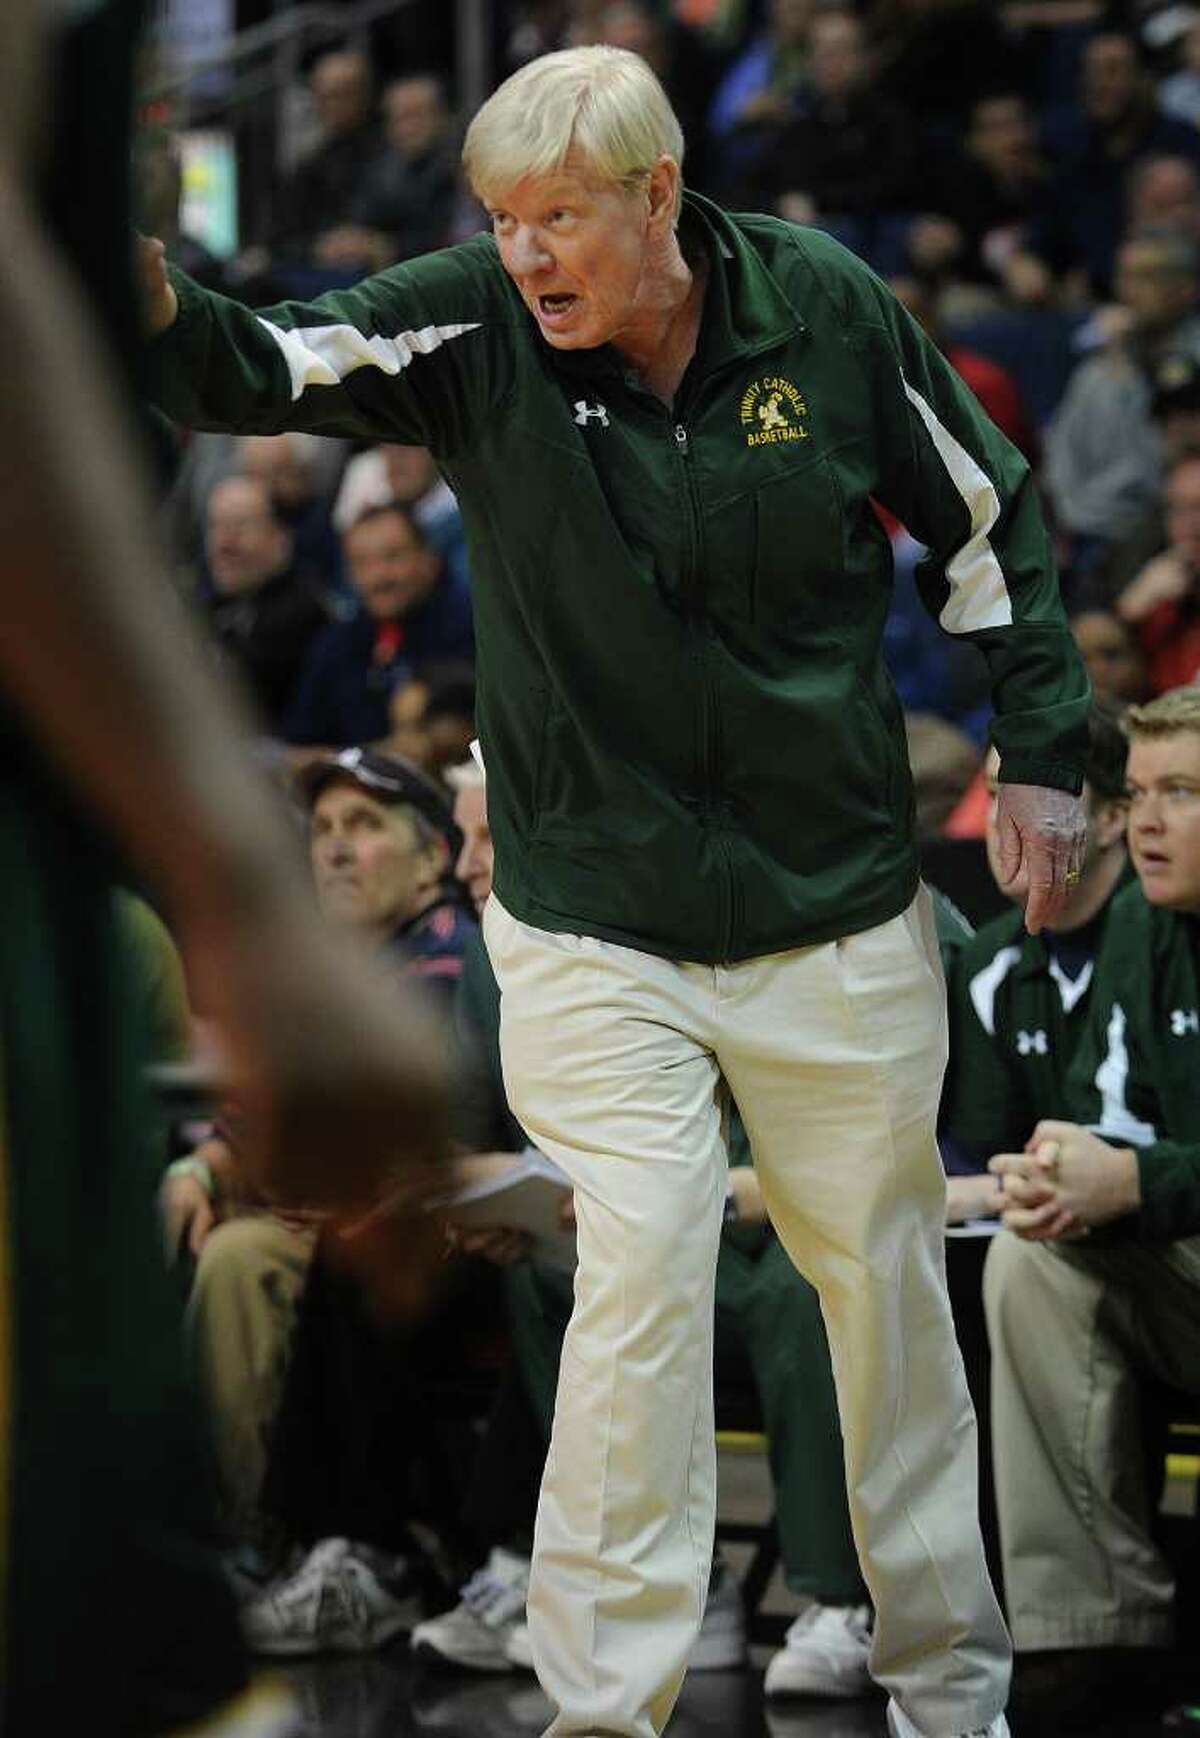 Trinity Catholic boys basketball head coach Mike Walsh during their FCIAC semi-final matchup with Bassick at the Webster Bank Arena at Harbor Yard in Bridgeport on Monday, February 28, 2011.